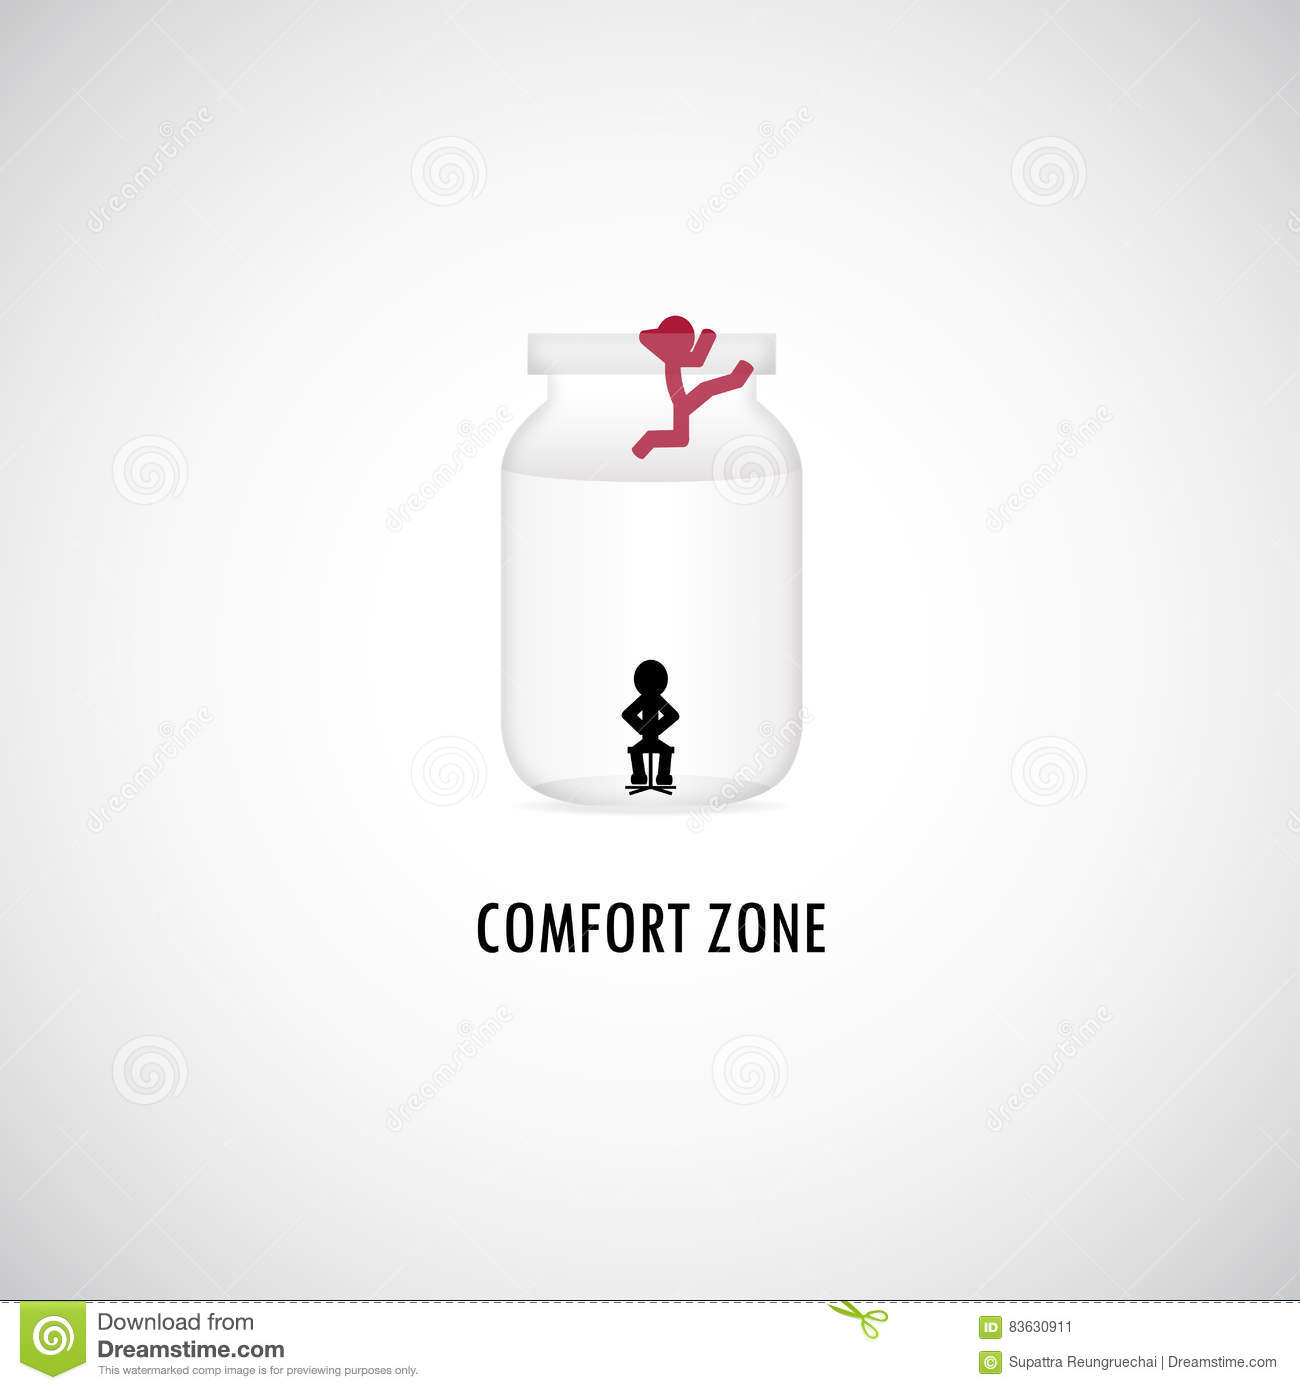 Comfort zone graphic design stock vector illustration of comfort zone graphic design biocorpaavc Image collections